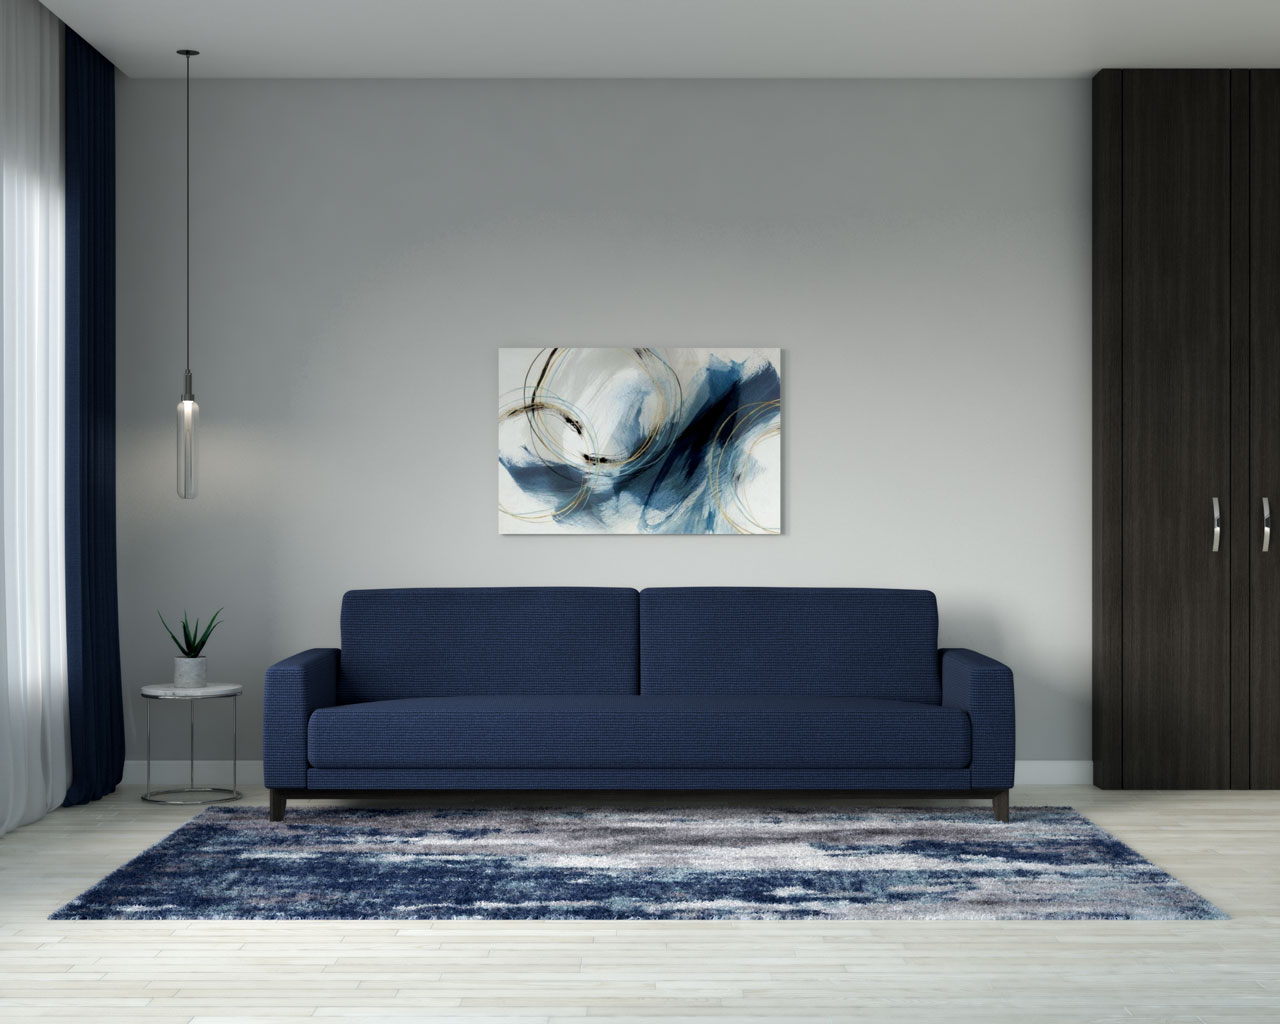 Best Wall Color For Navy Couch 7 Awesome Ideas Roomdsign Com